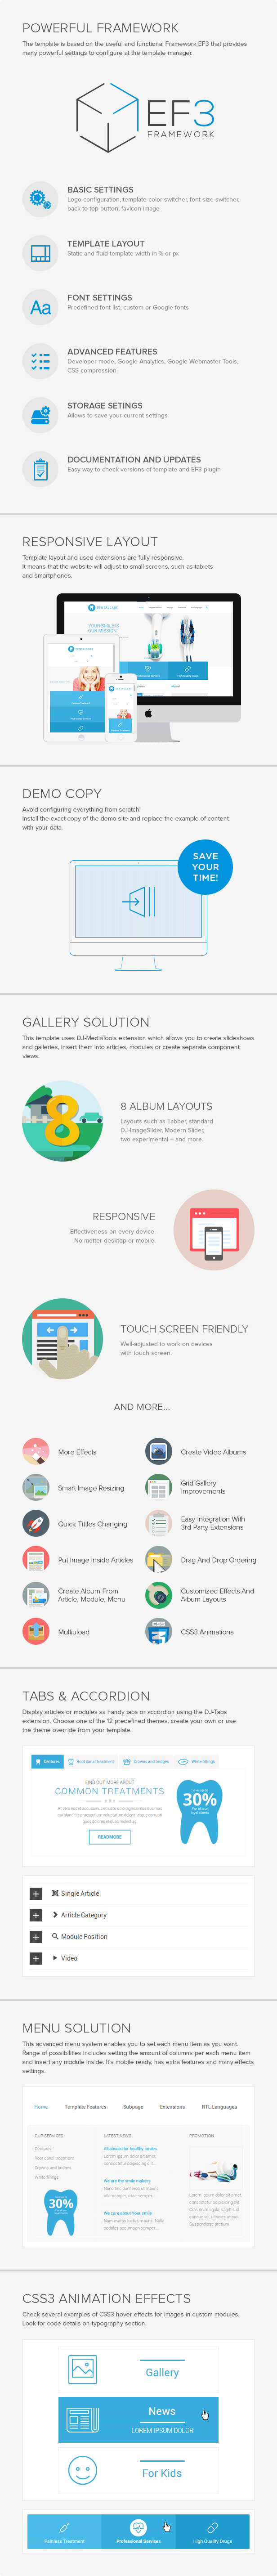 Joomla medical & service template by Joomla-Monster